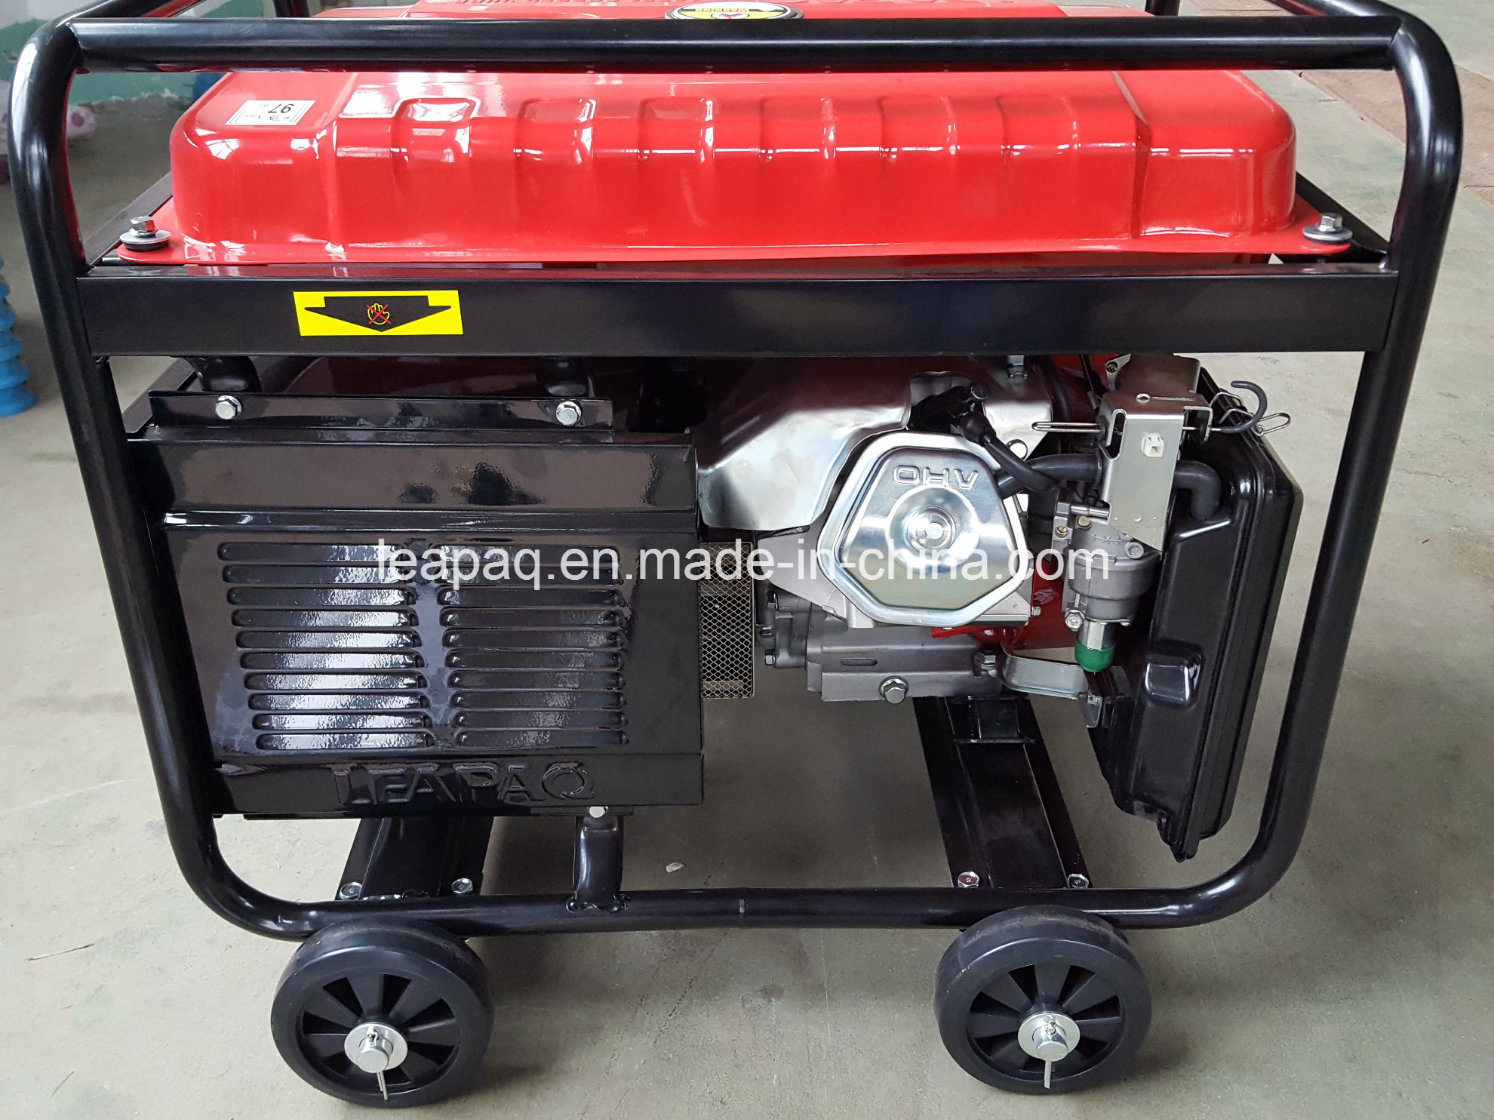 5.0 Kw Electric Start Portable Gasoline Generator